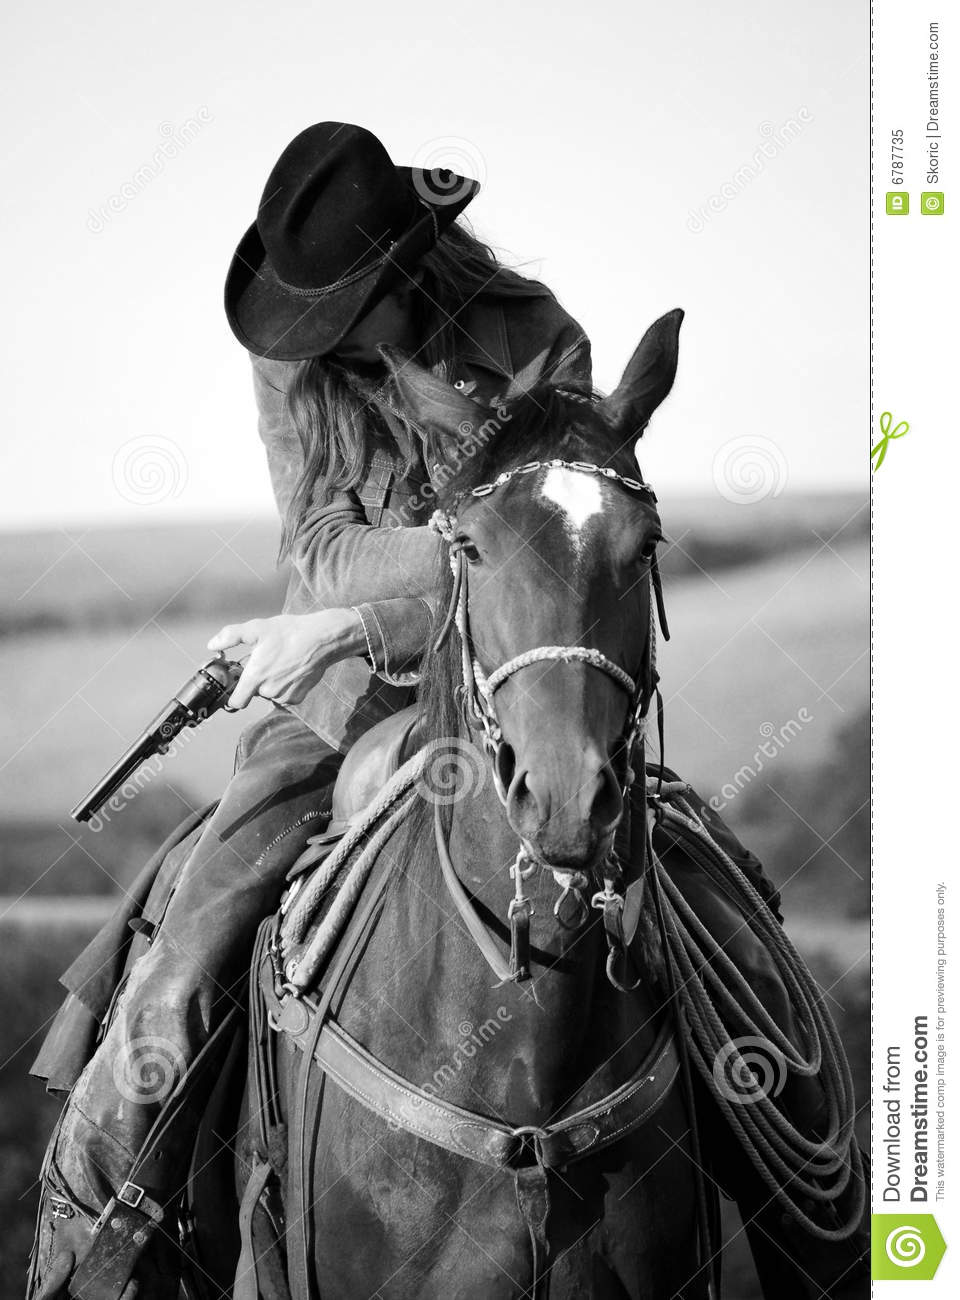 Cowboy On A Horse With A Gun Stock Image Image Of Land Farm 6787735